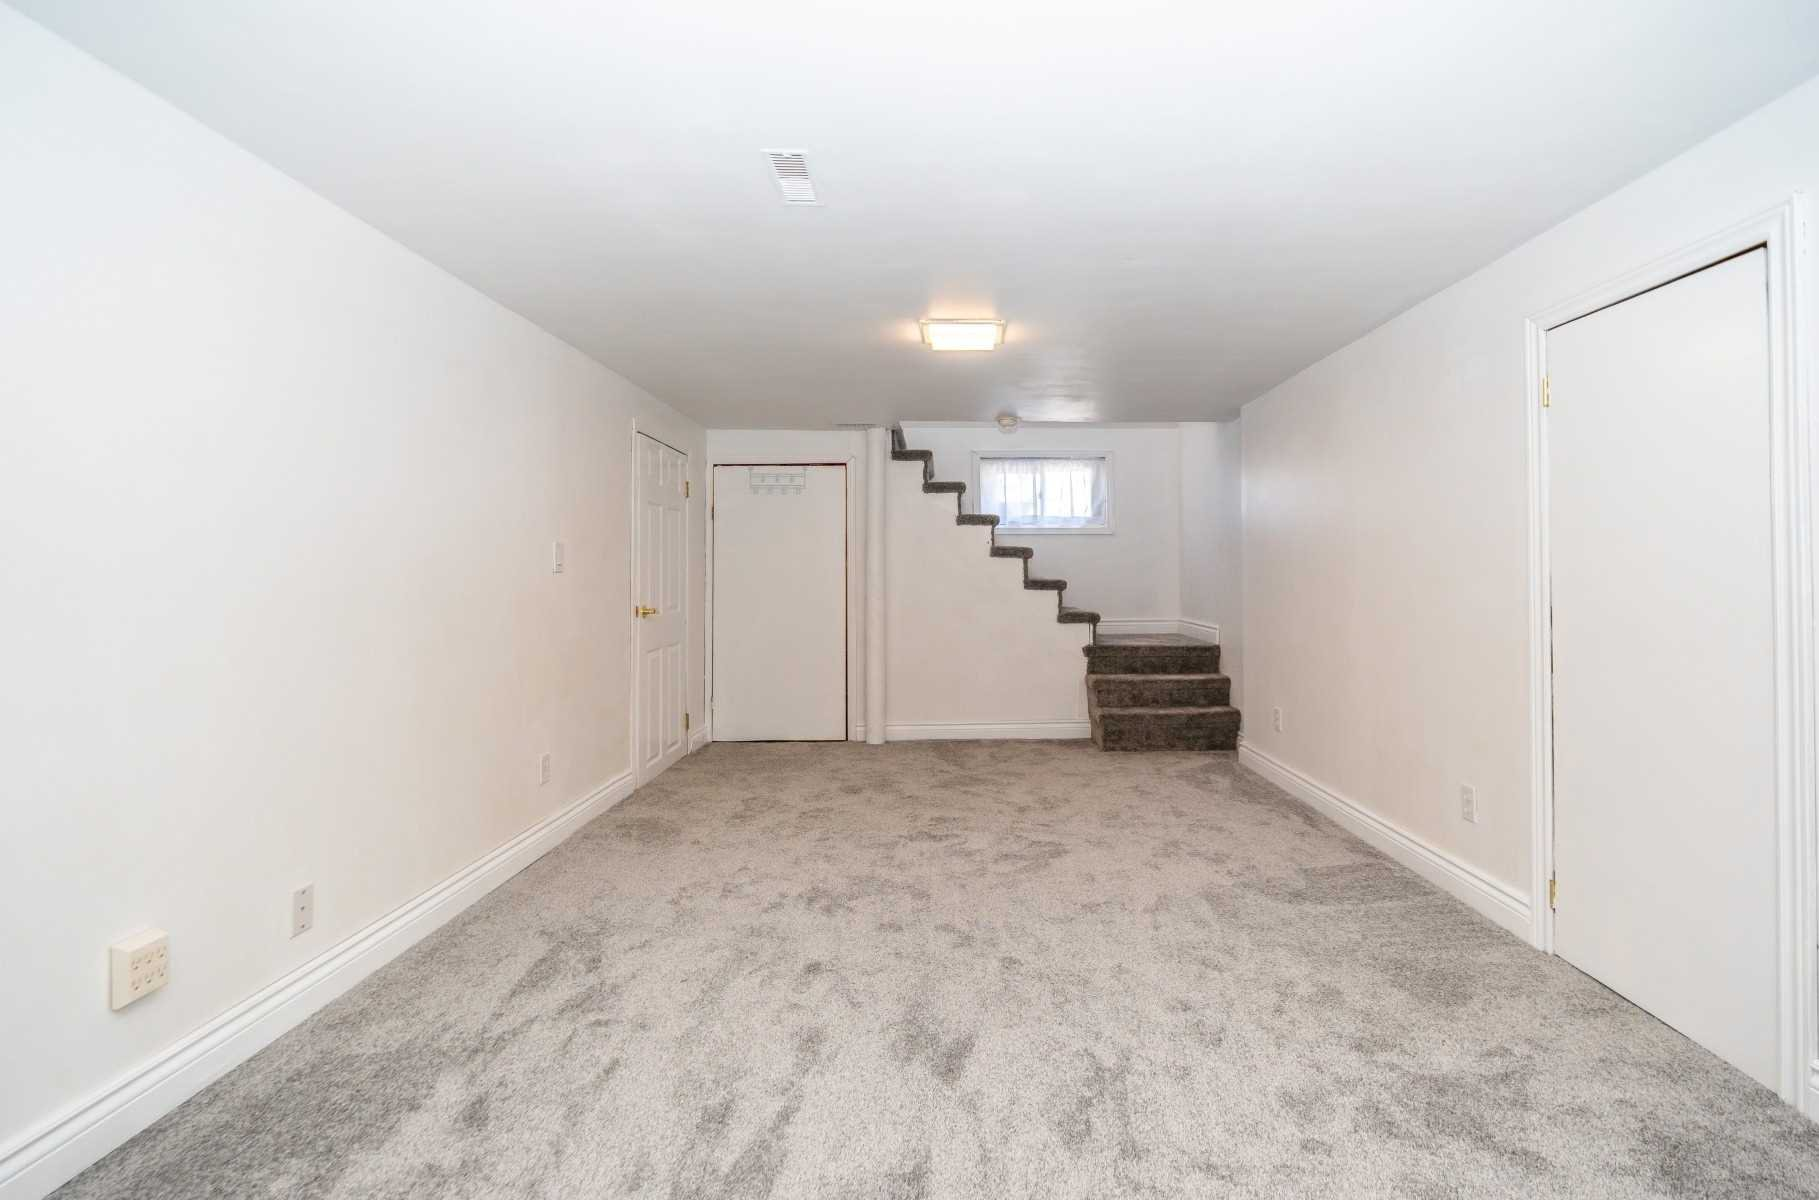 Photo 26: Photos: 40 Eastlawn Street in Oshawa: Donevan House (Bungalow) for sale : MLS®# E4769026